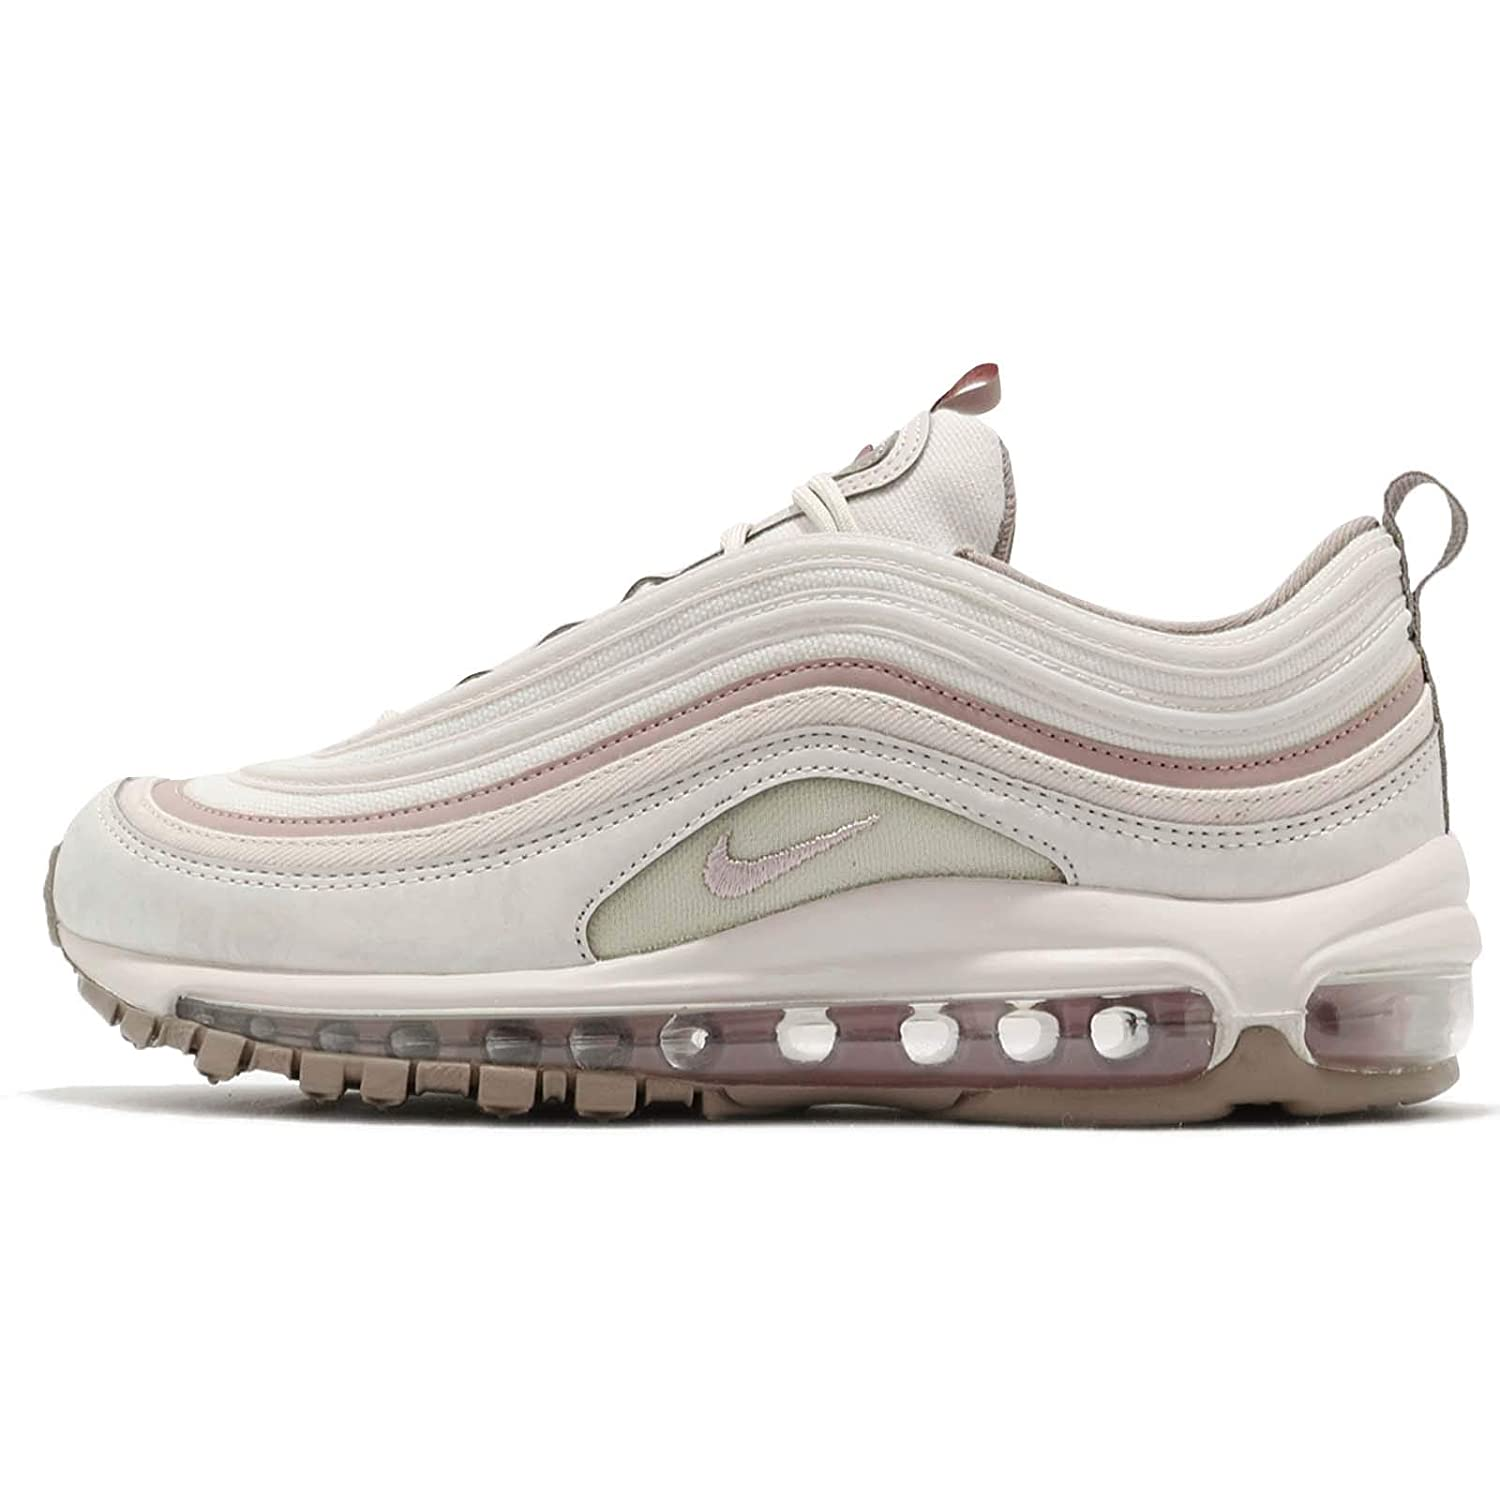 Nike Women's W Air Max 97 PRM Low Top Sneakers: Amazon.co.uk